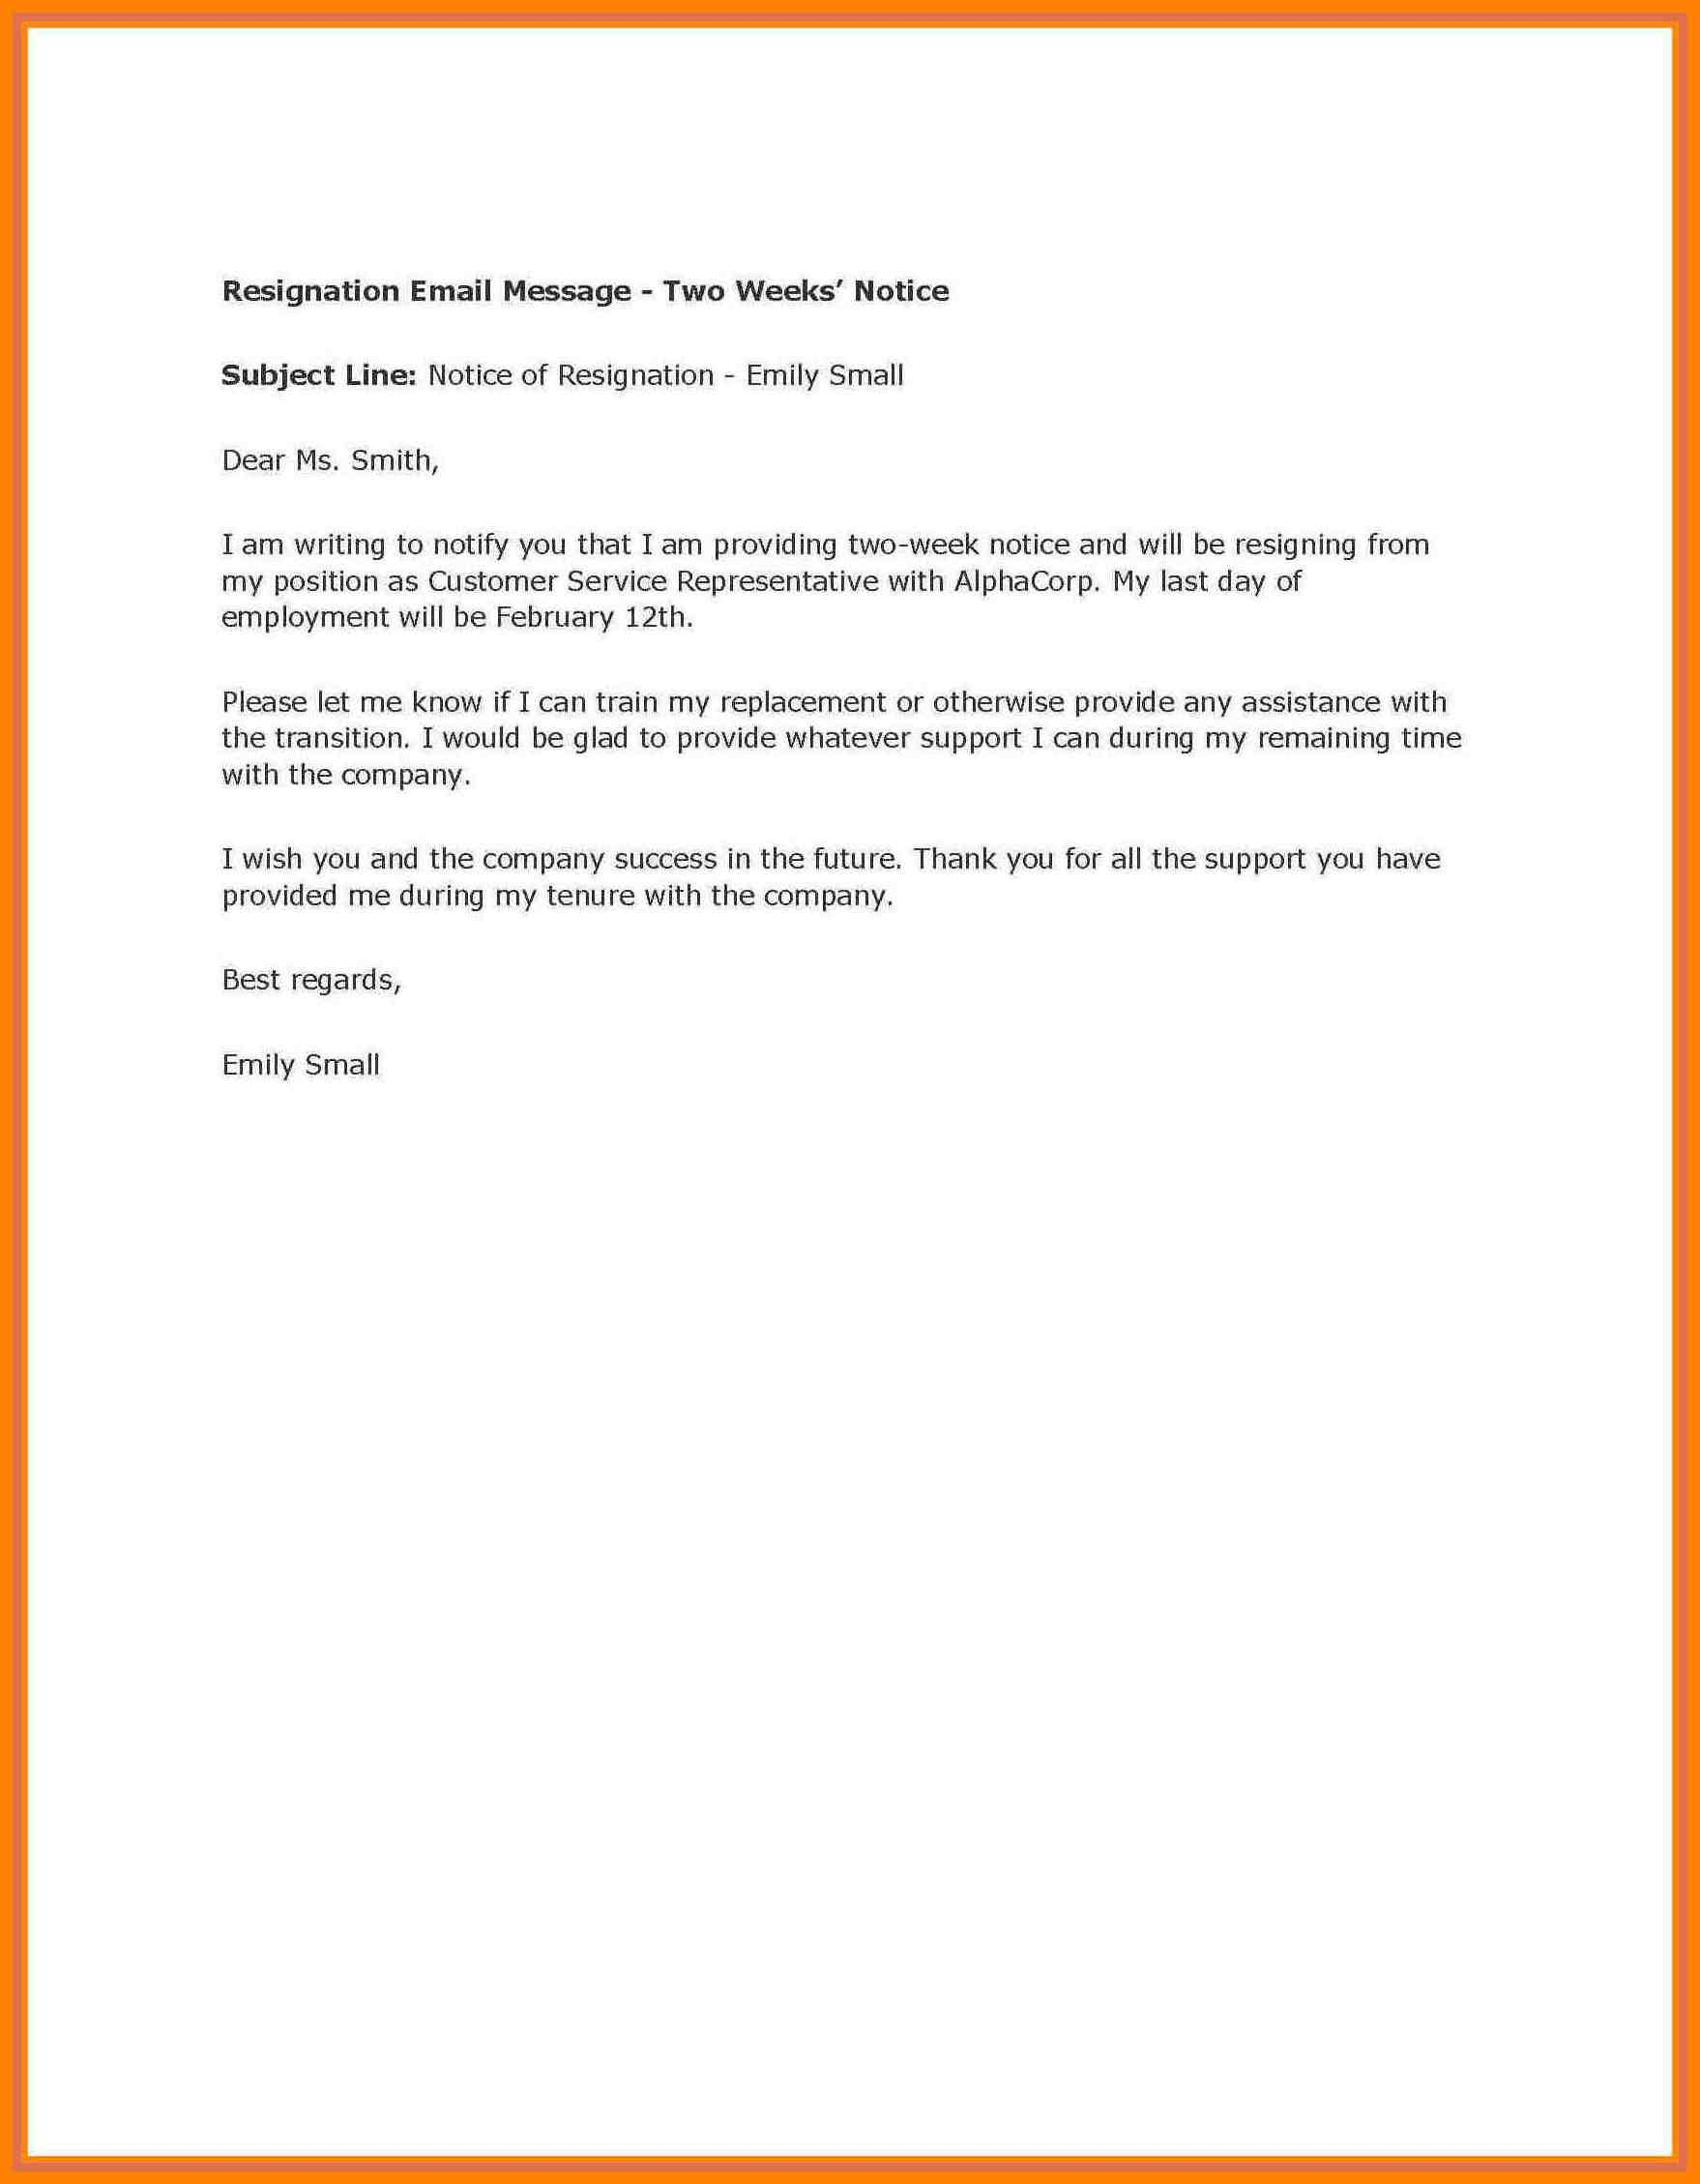 004 Week Notice Template Word Ideas Two Weeks Letter Example Pertaining To 2 Weeks Notice Template Word